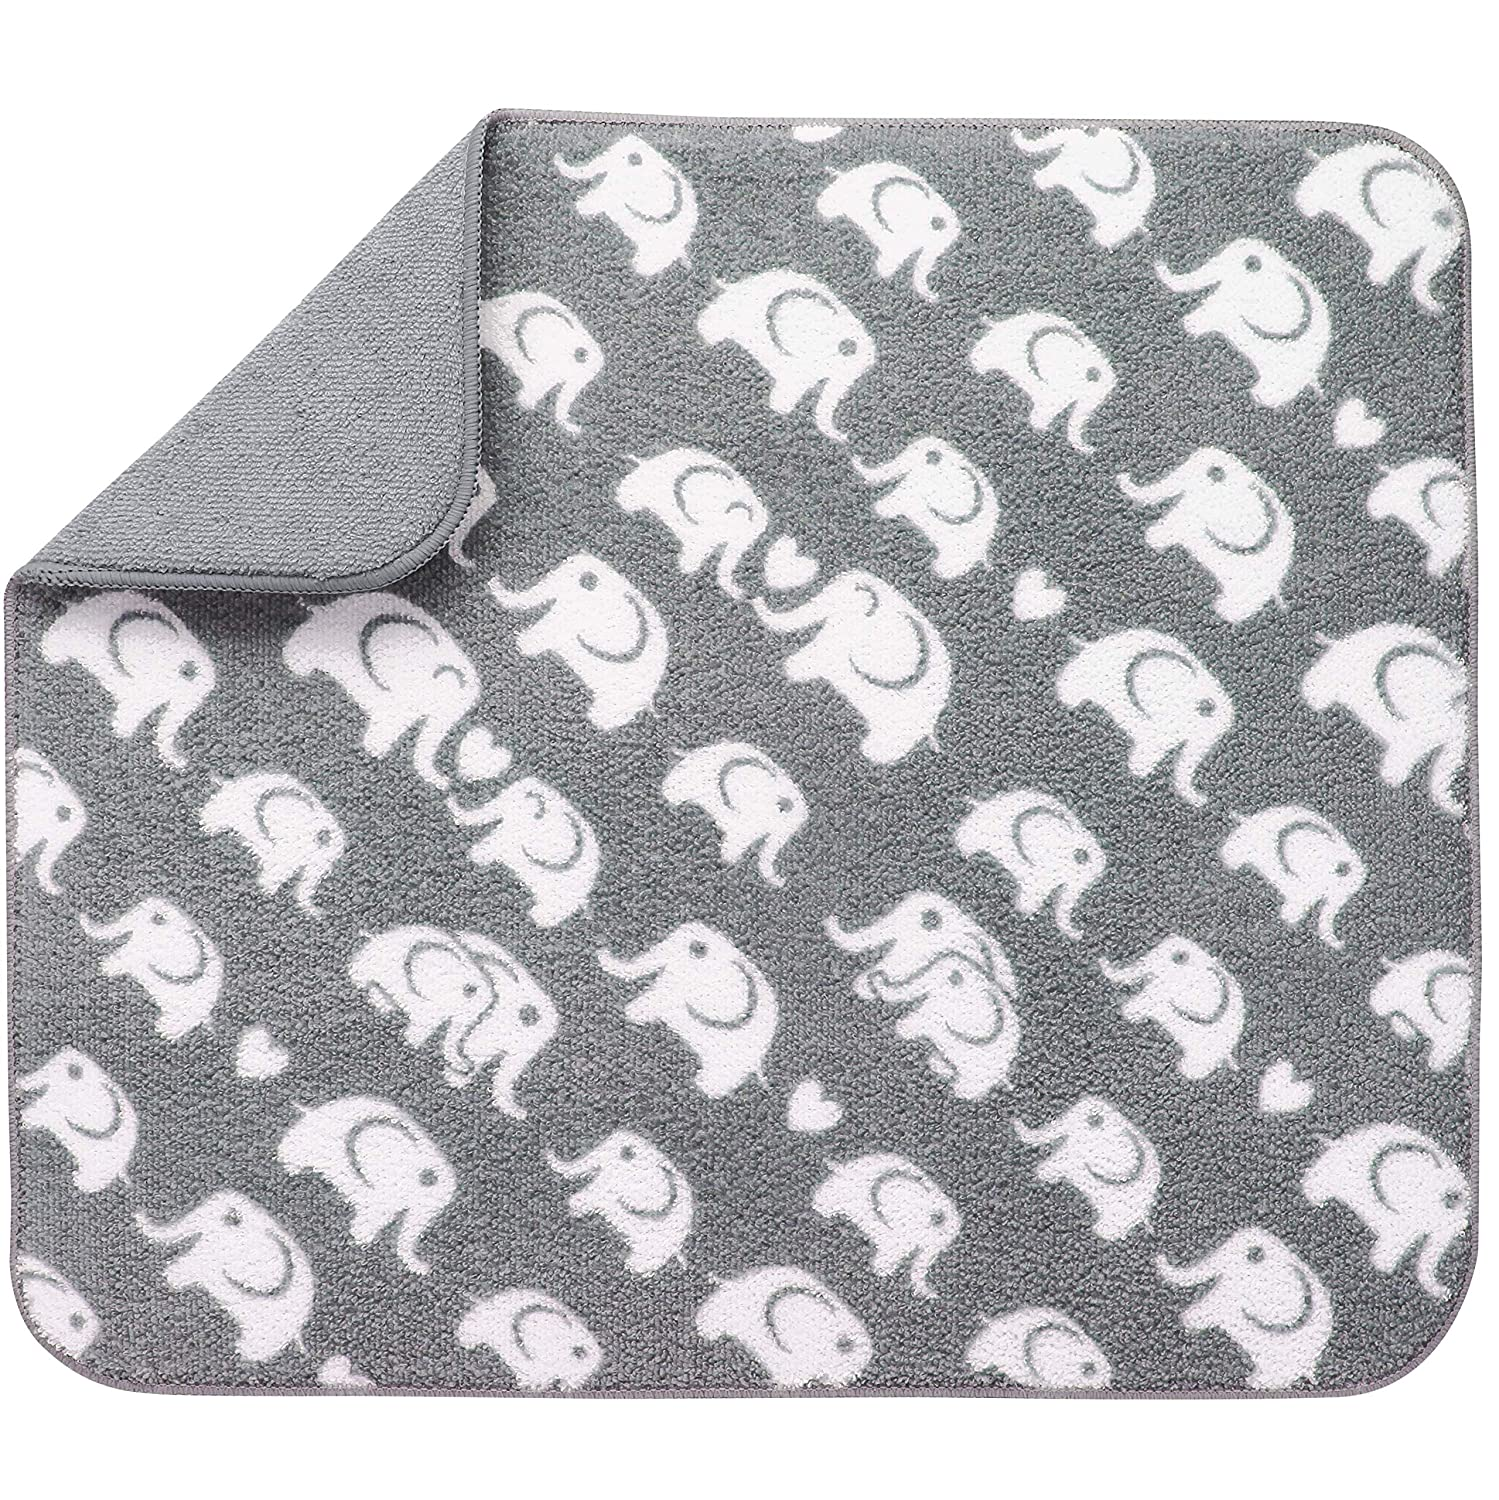 STS 524401 Reversible Baby Bottle Drying Mat - 16 Inch x 18 Inch, Grey Elephant Print